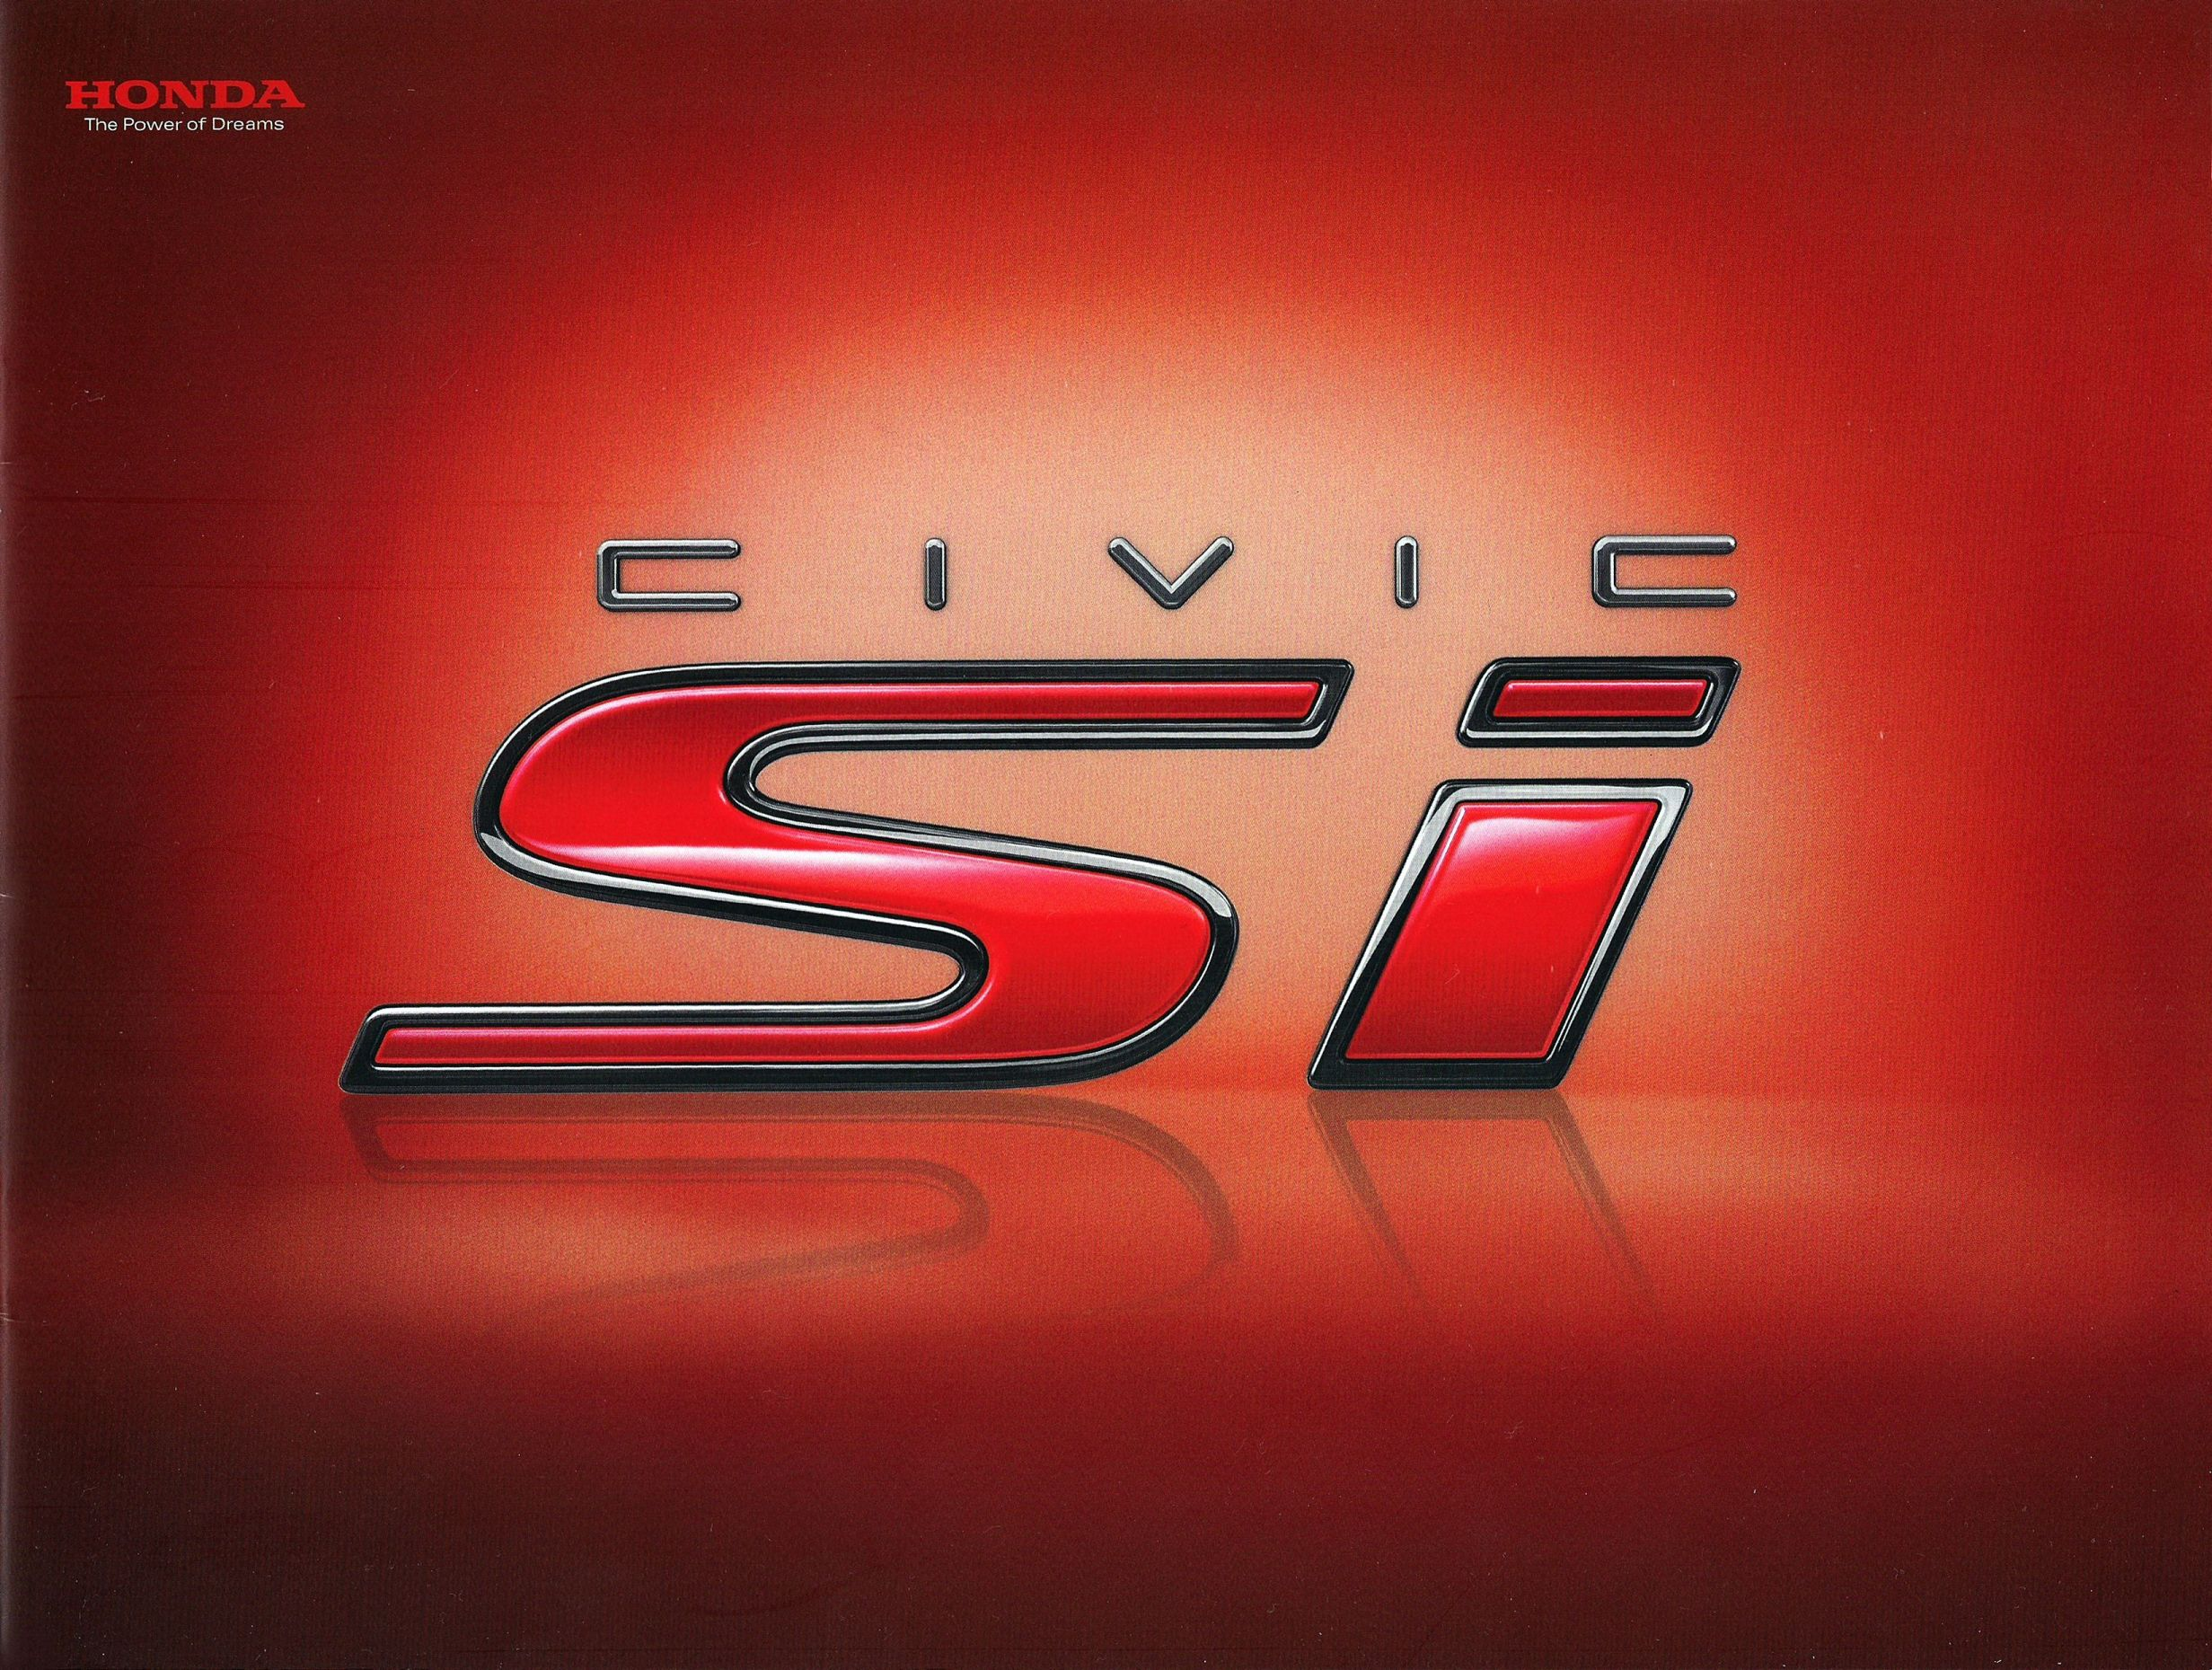 2009 Honda Civic Si Brochure